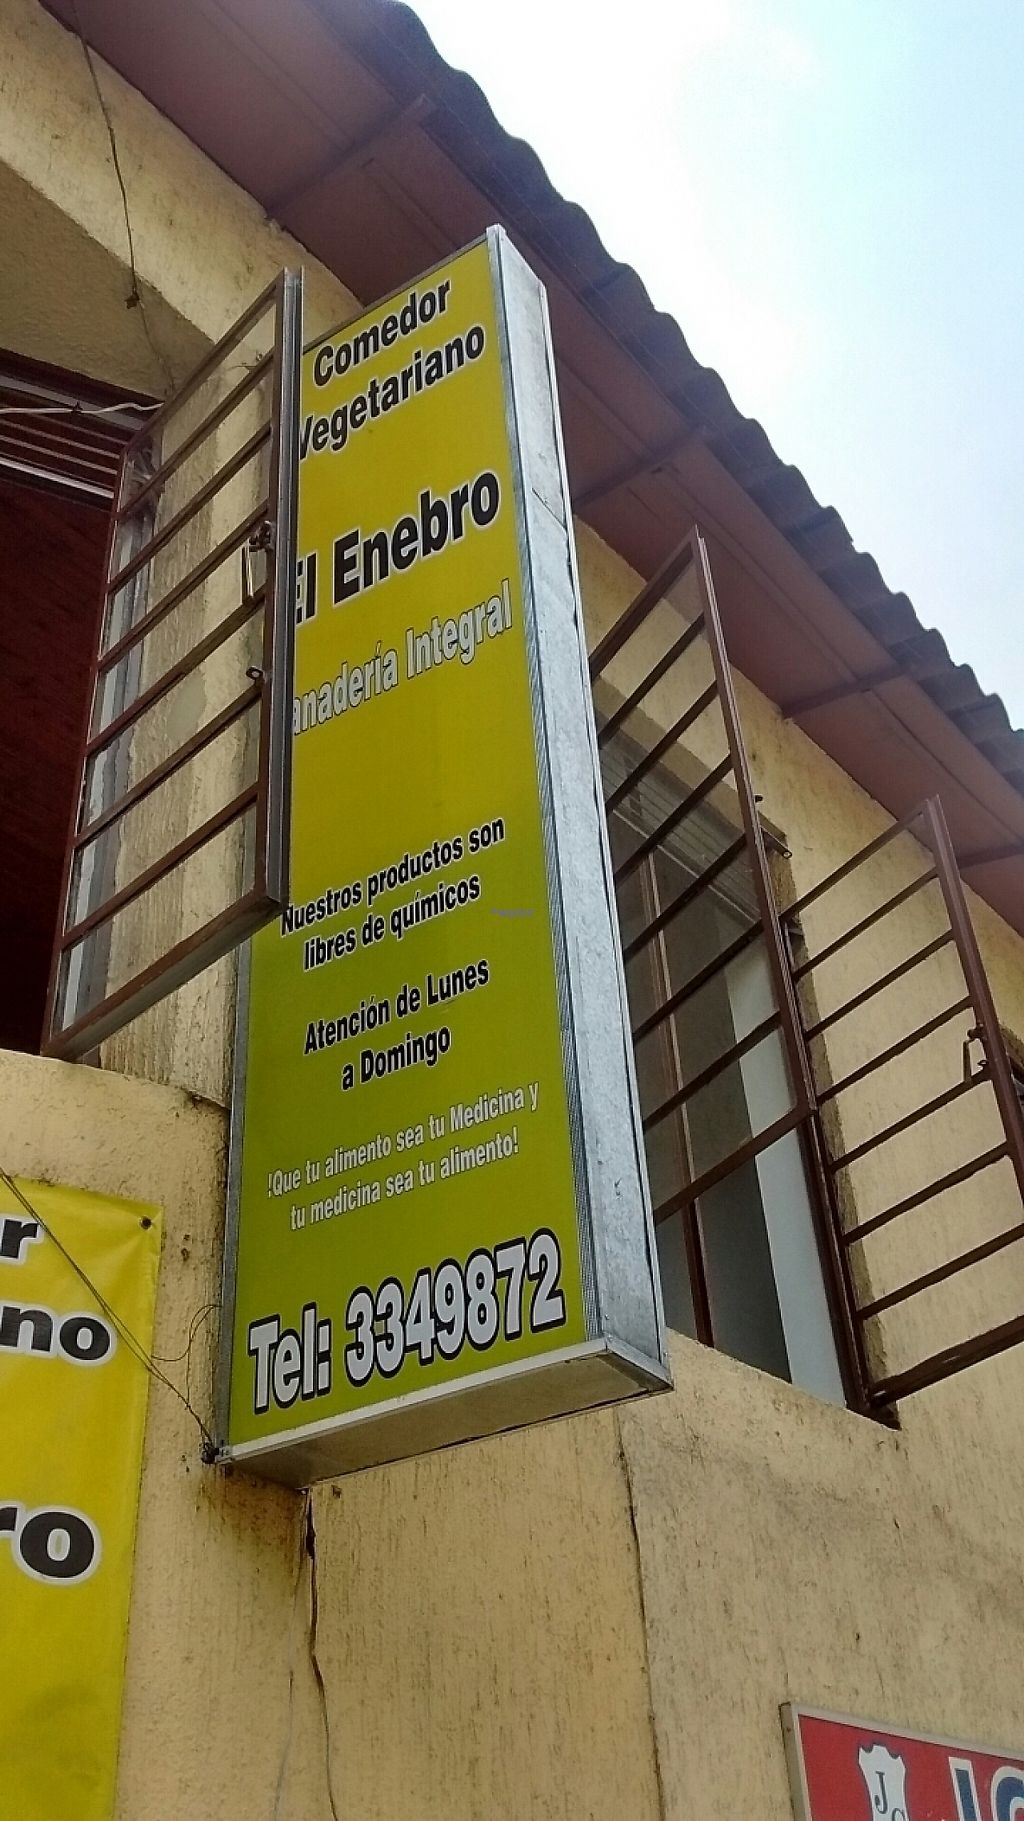 """Photo of El Enebro  by <a href=""""/members/profile/maynard7"""">maynard7</a> <br/>Sign <br/> March 6, 2017  - <a href='/contact/abuse/image/23685/233595'>Report</a>"""